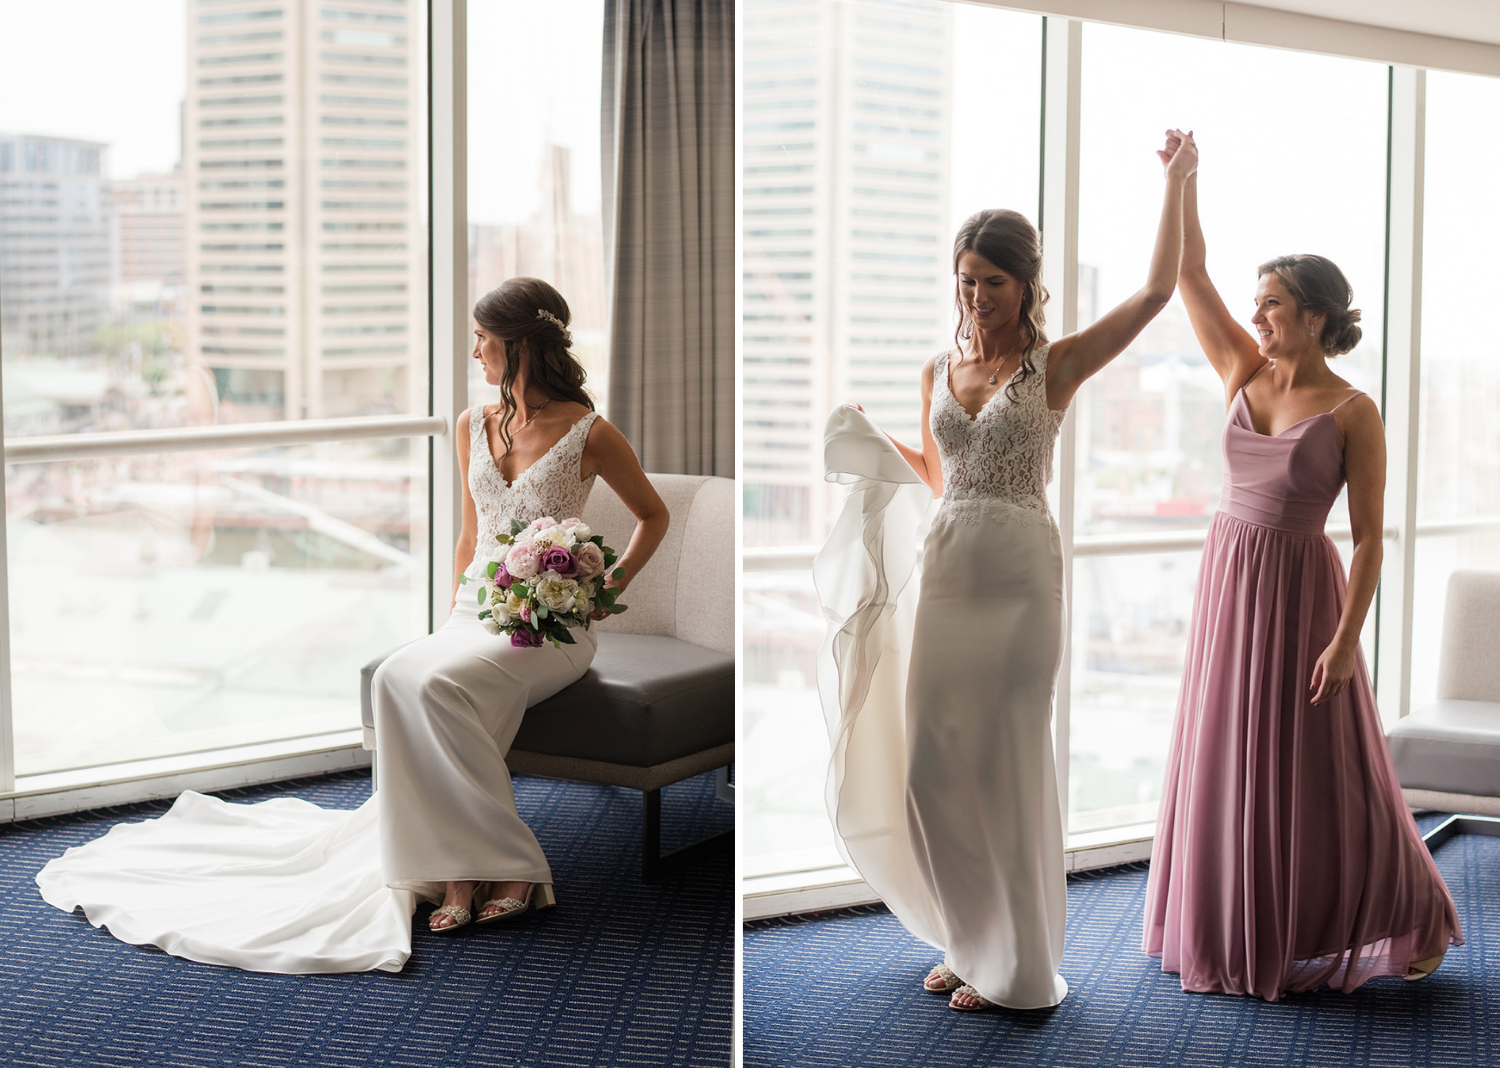 bride looking out the window at the city skyline and bride and bridesmaid sharing a high five